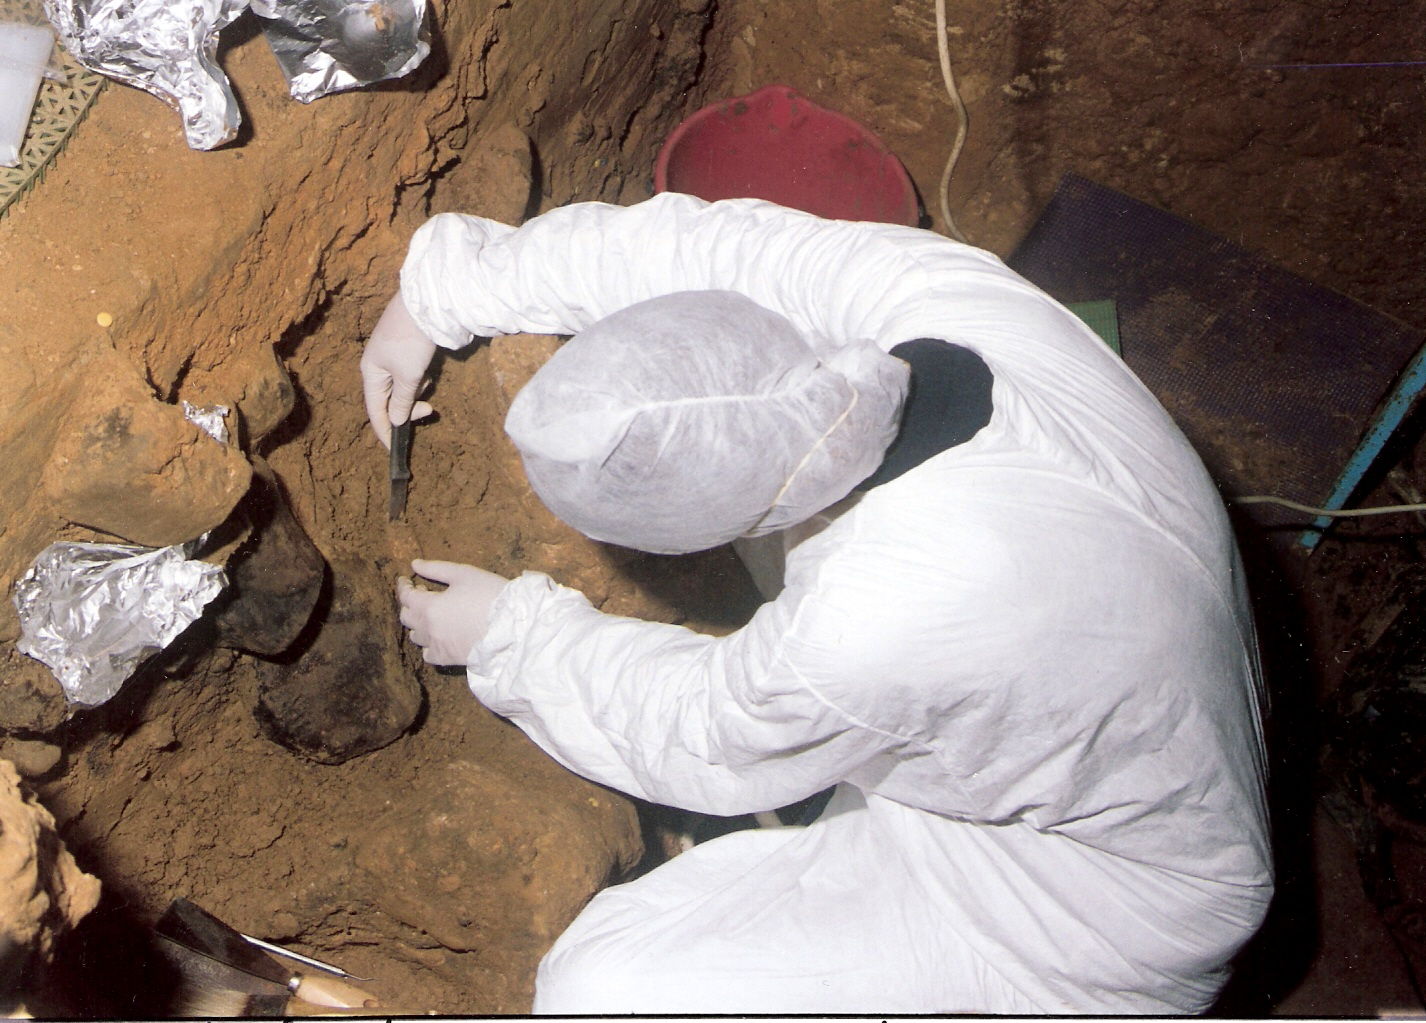 DNA From Extinct Humans Discovered in Cave Dirt